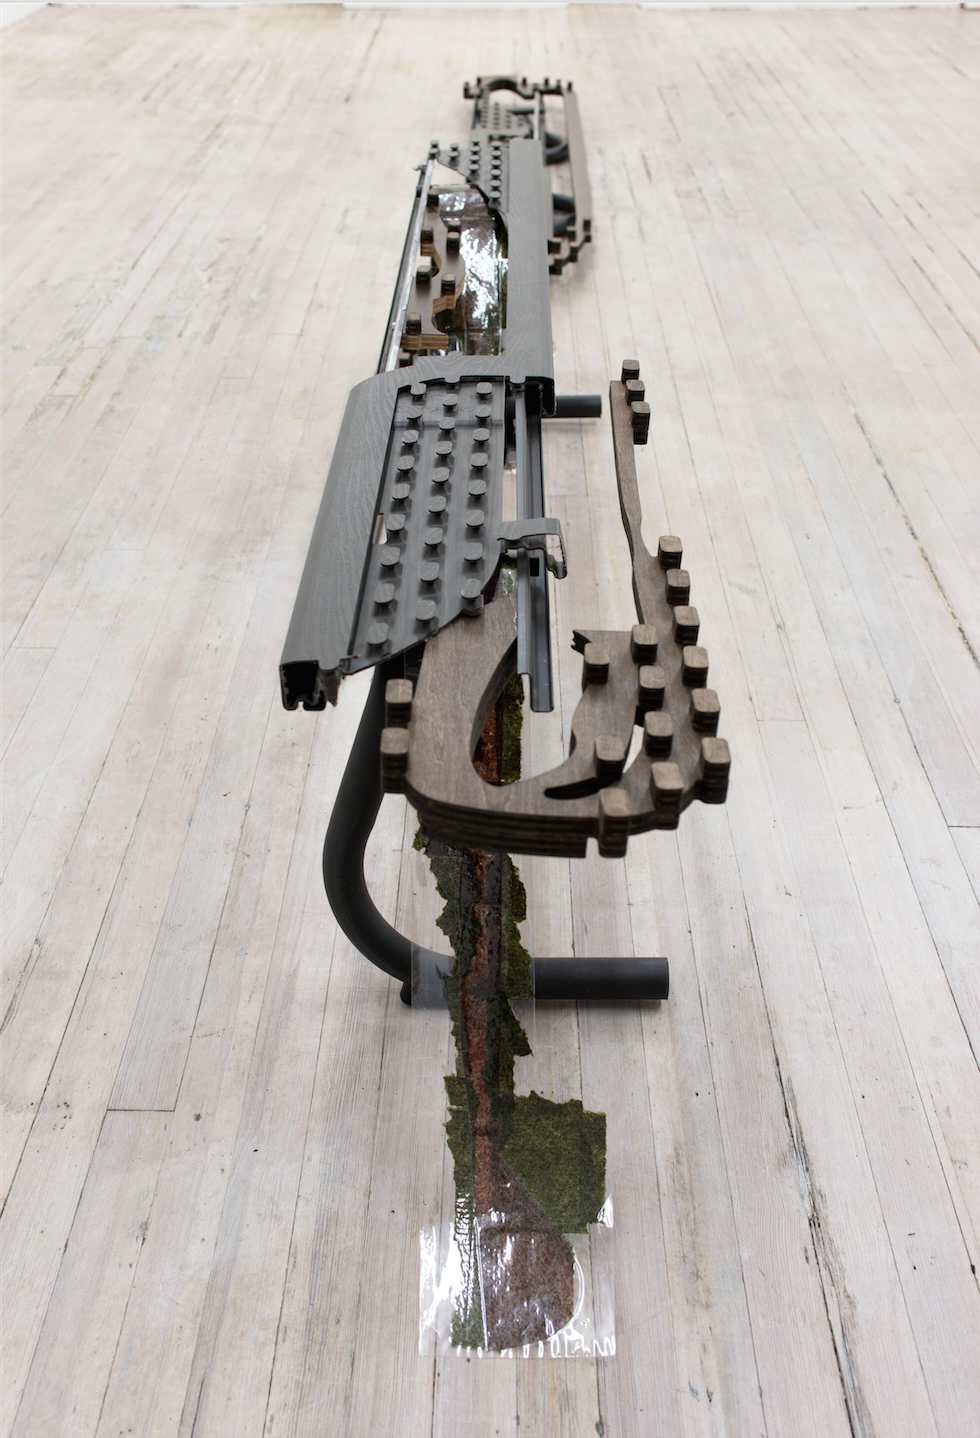 Anne Libby   P*P*O*S*T*O*,  2017 Laminated seaweed, powder coated steel, polyethylene, plywood, formica